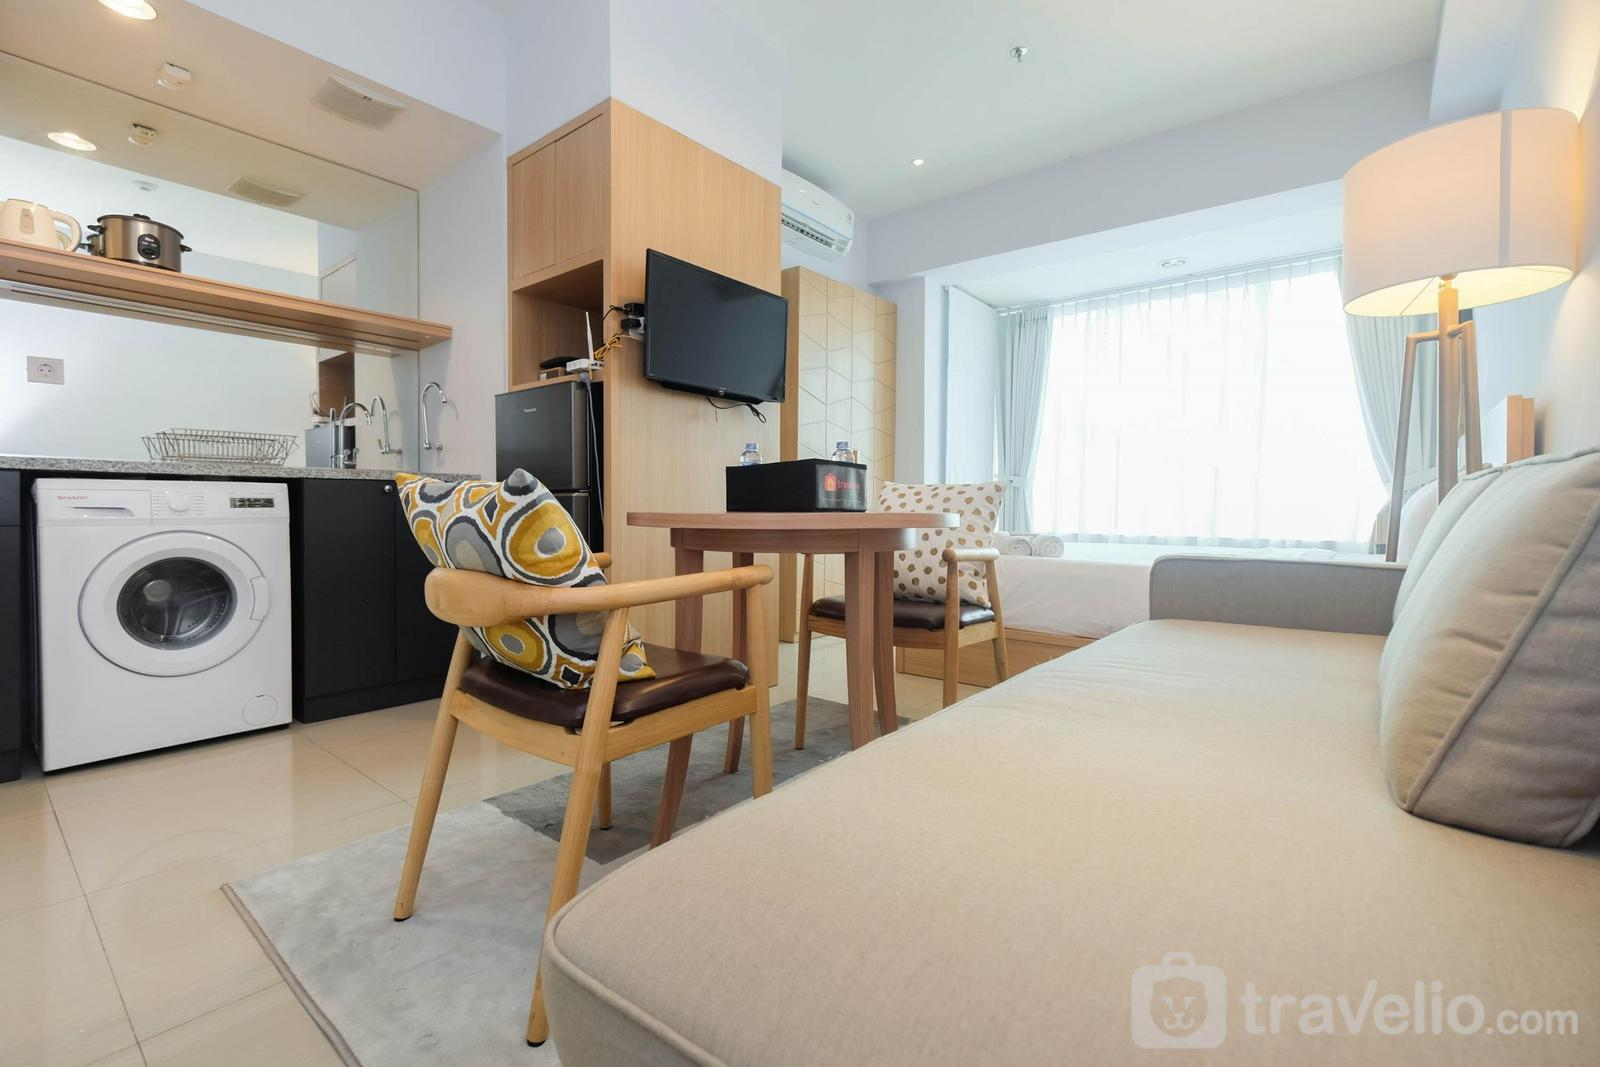 Grand Kamala Lagoon - Modern and Spacious Studio Grand Kamala Lagoon Apartment By Travelio